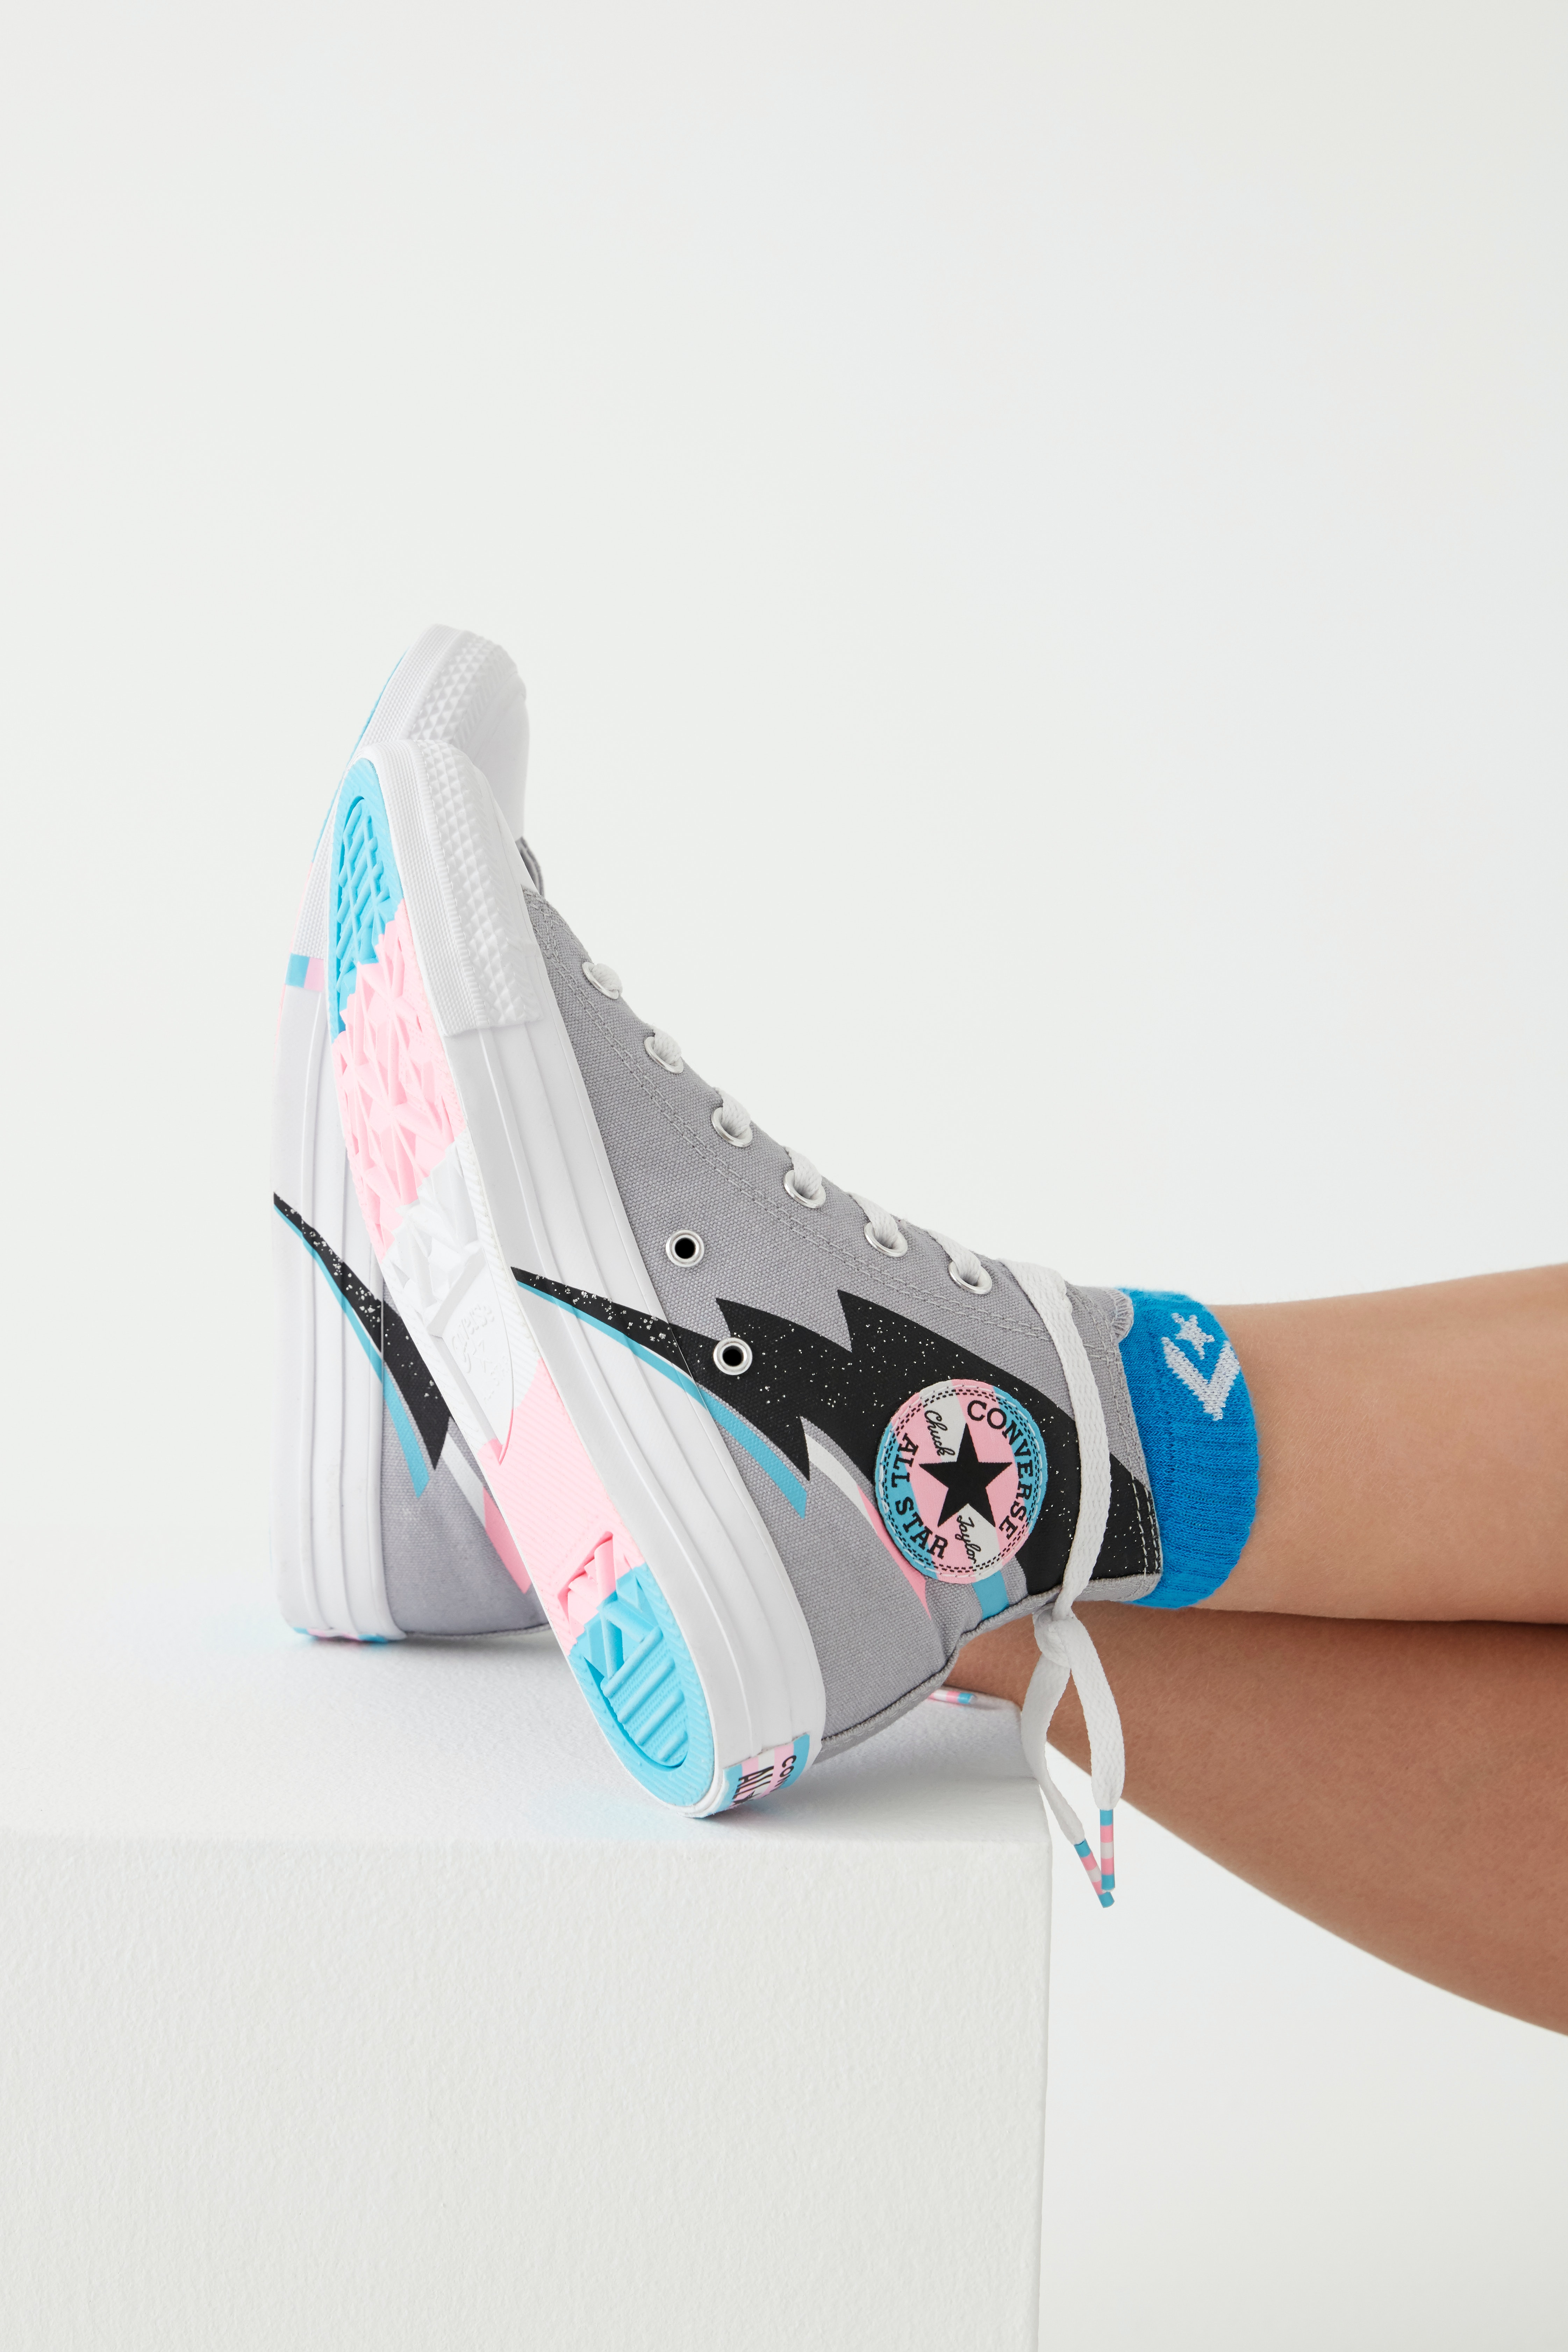 Converse's 2019 Pride Collection Is